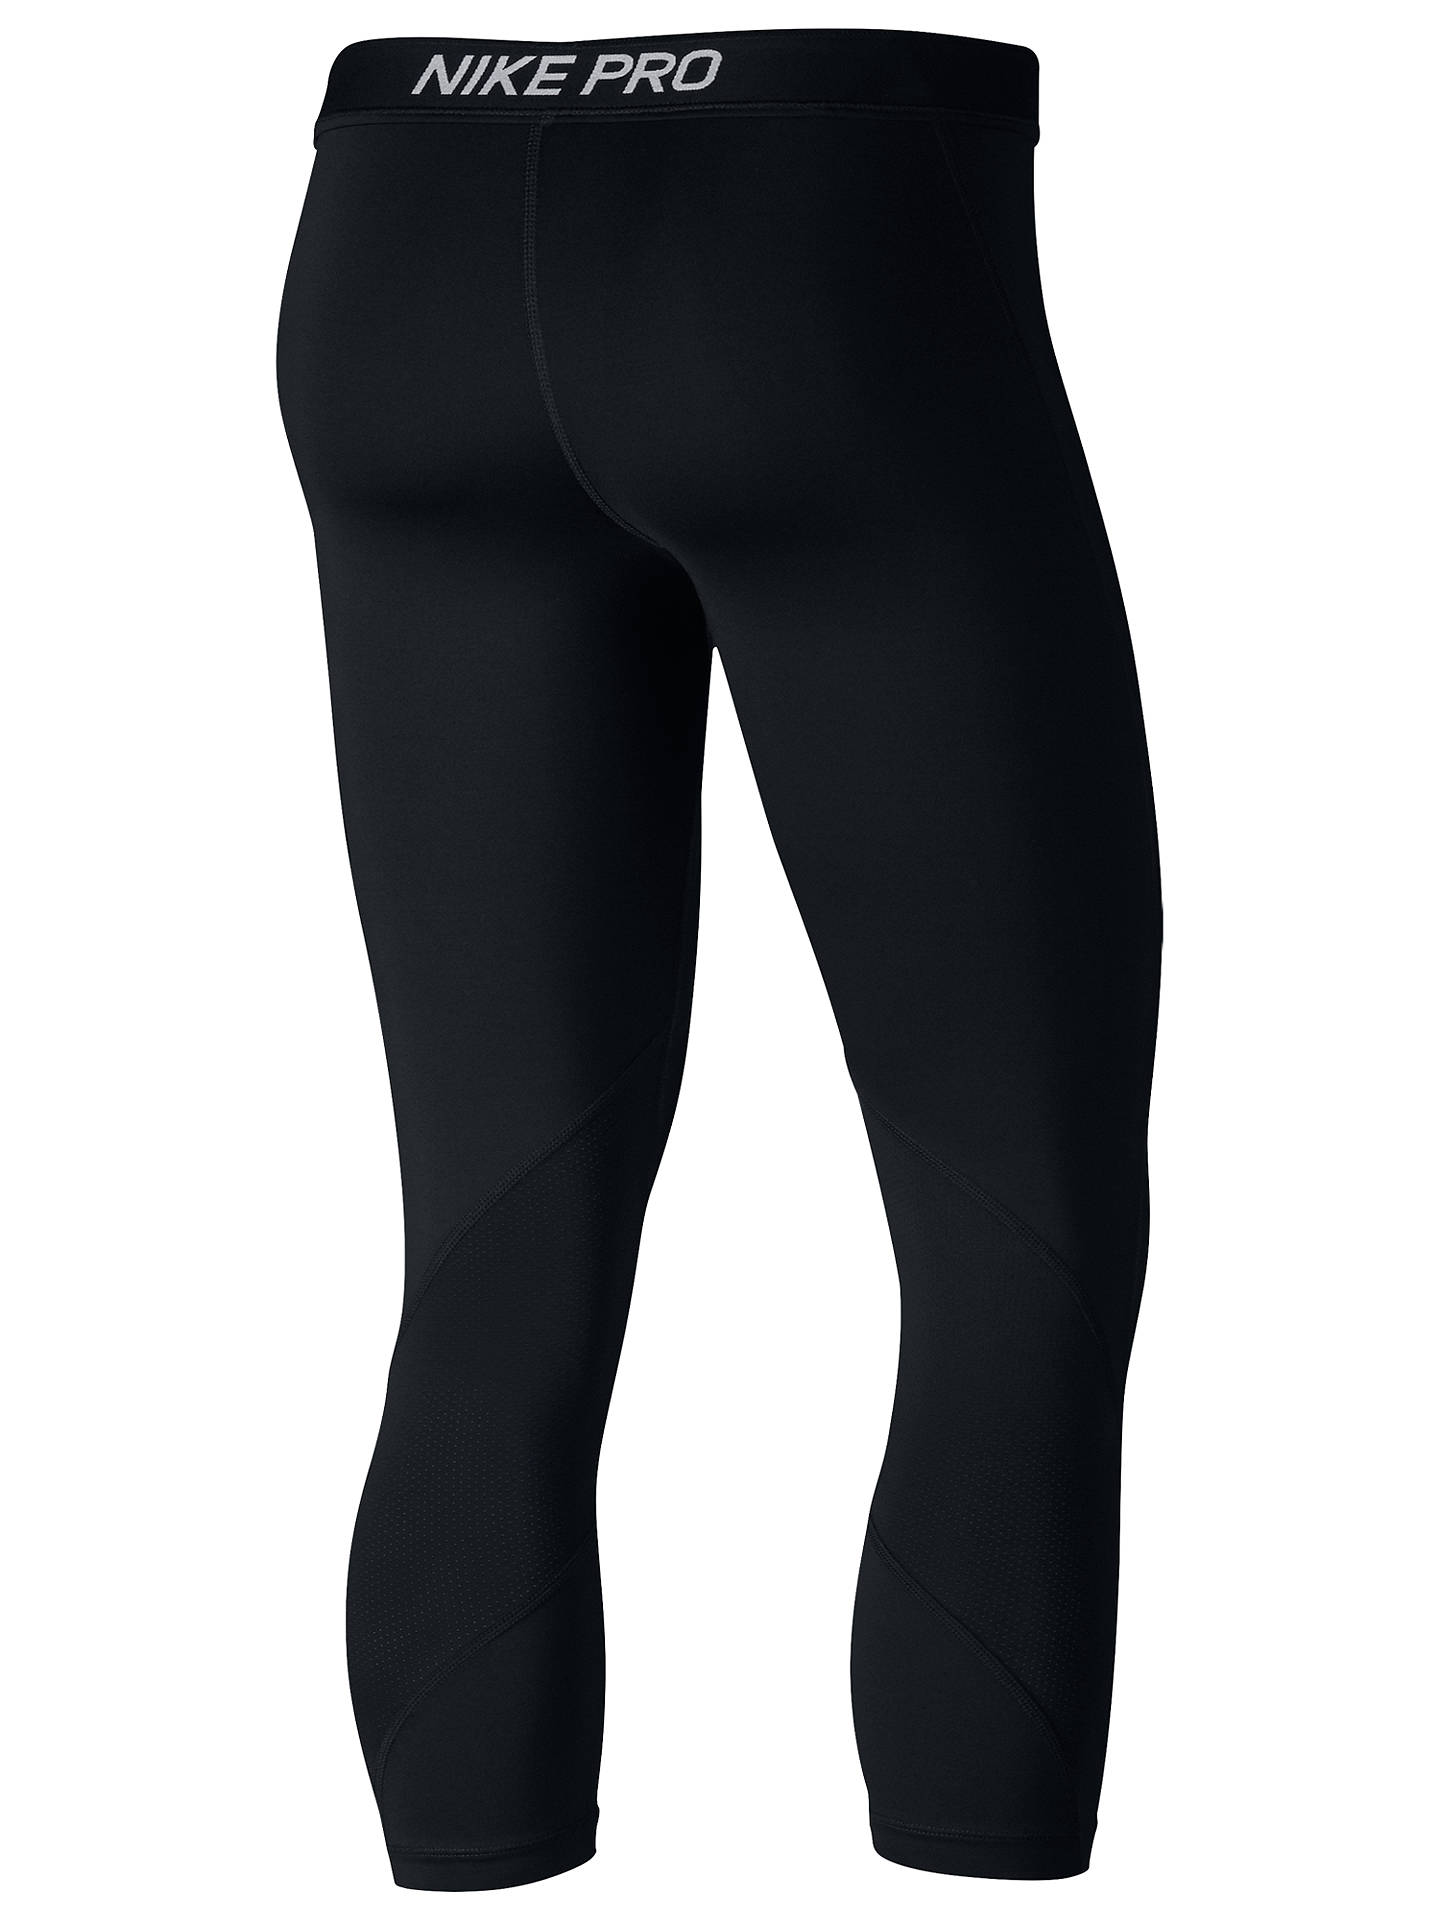 BuyNike Pro Capri Training Tights, Black/White, XS Online at johnlewis.com